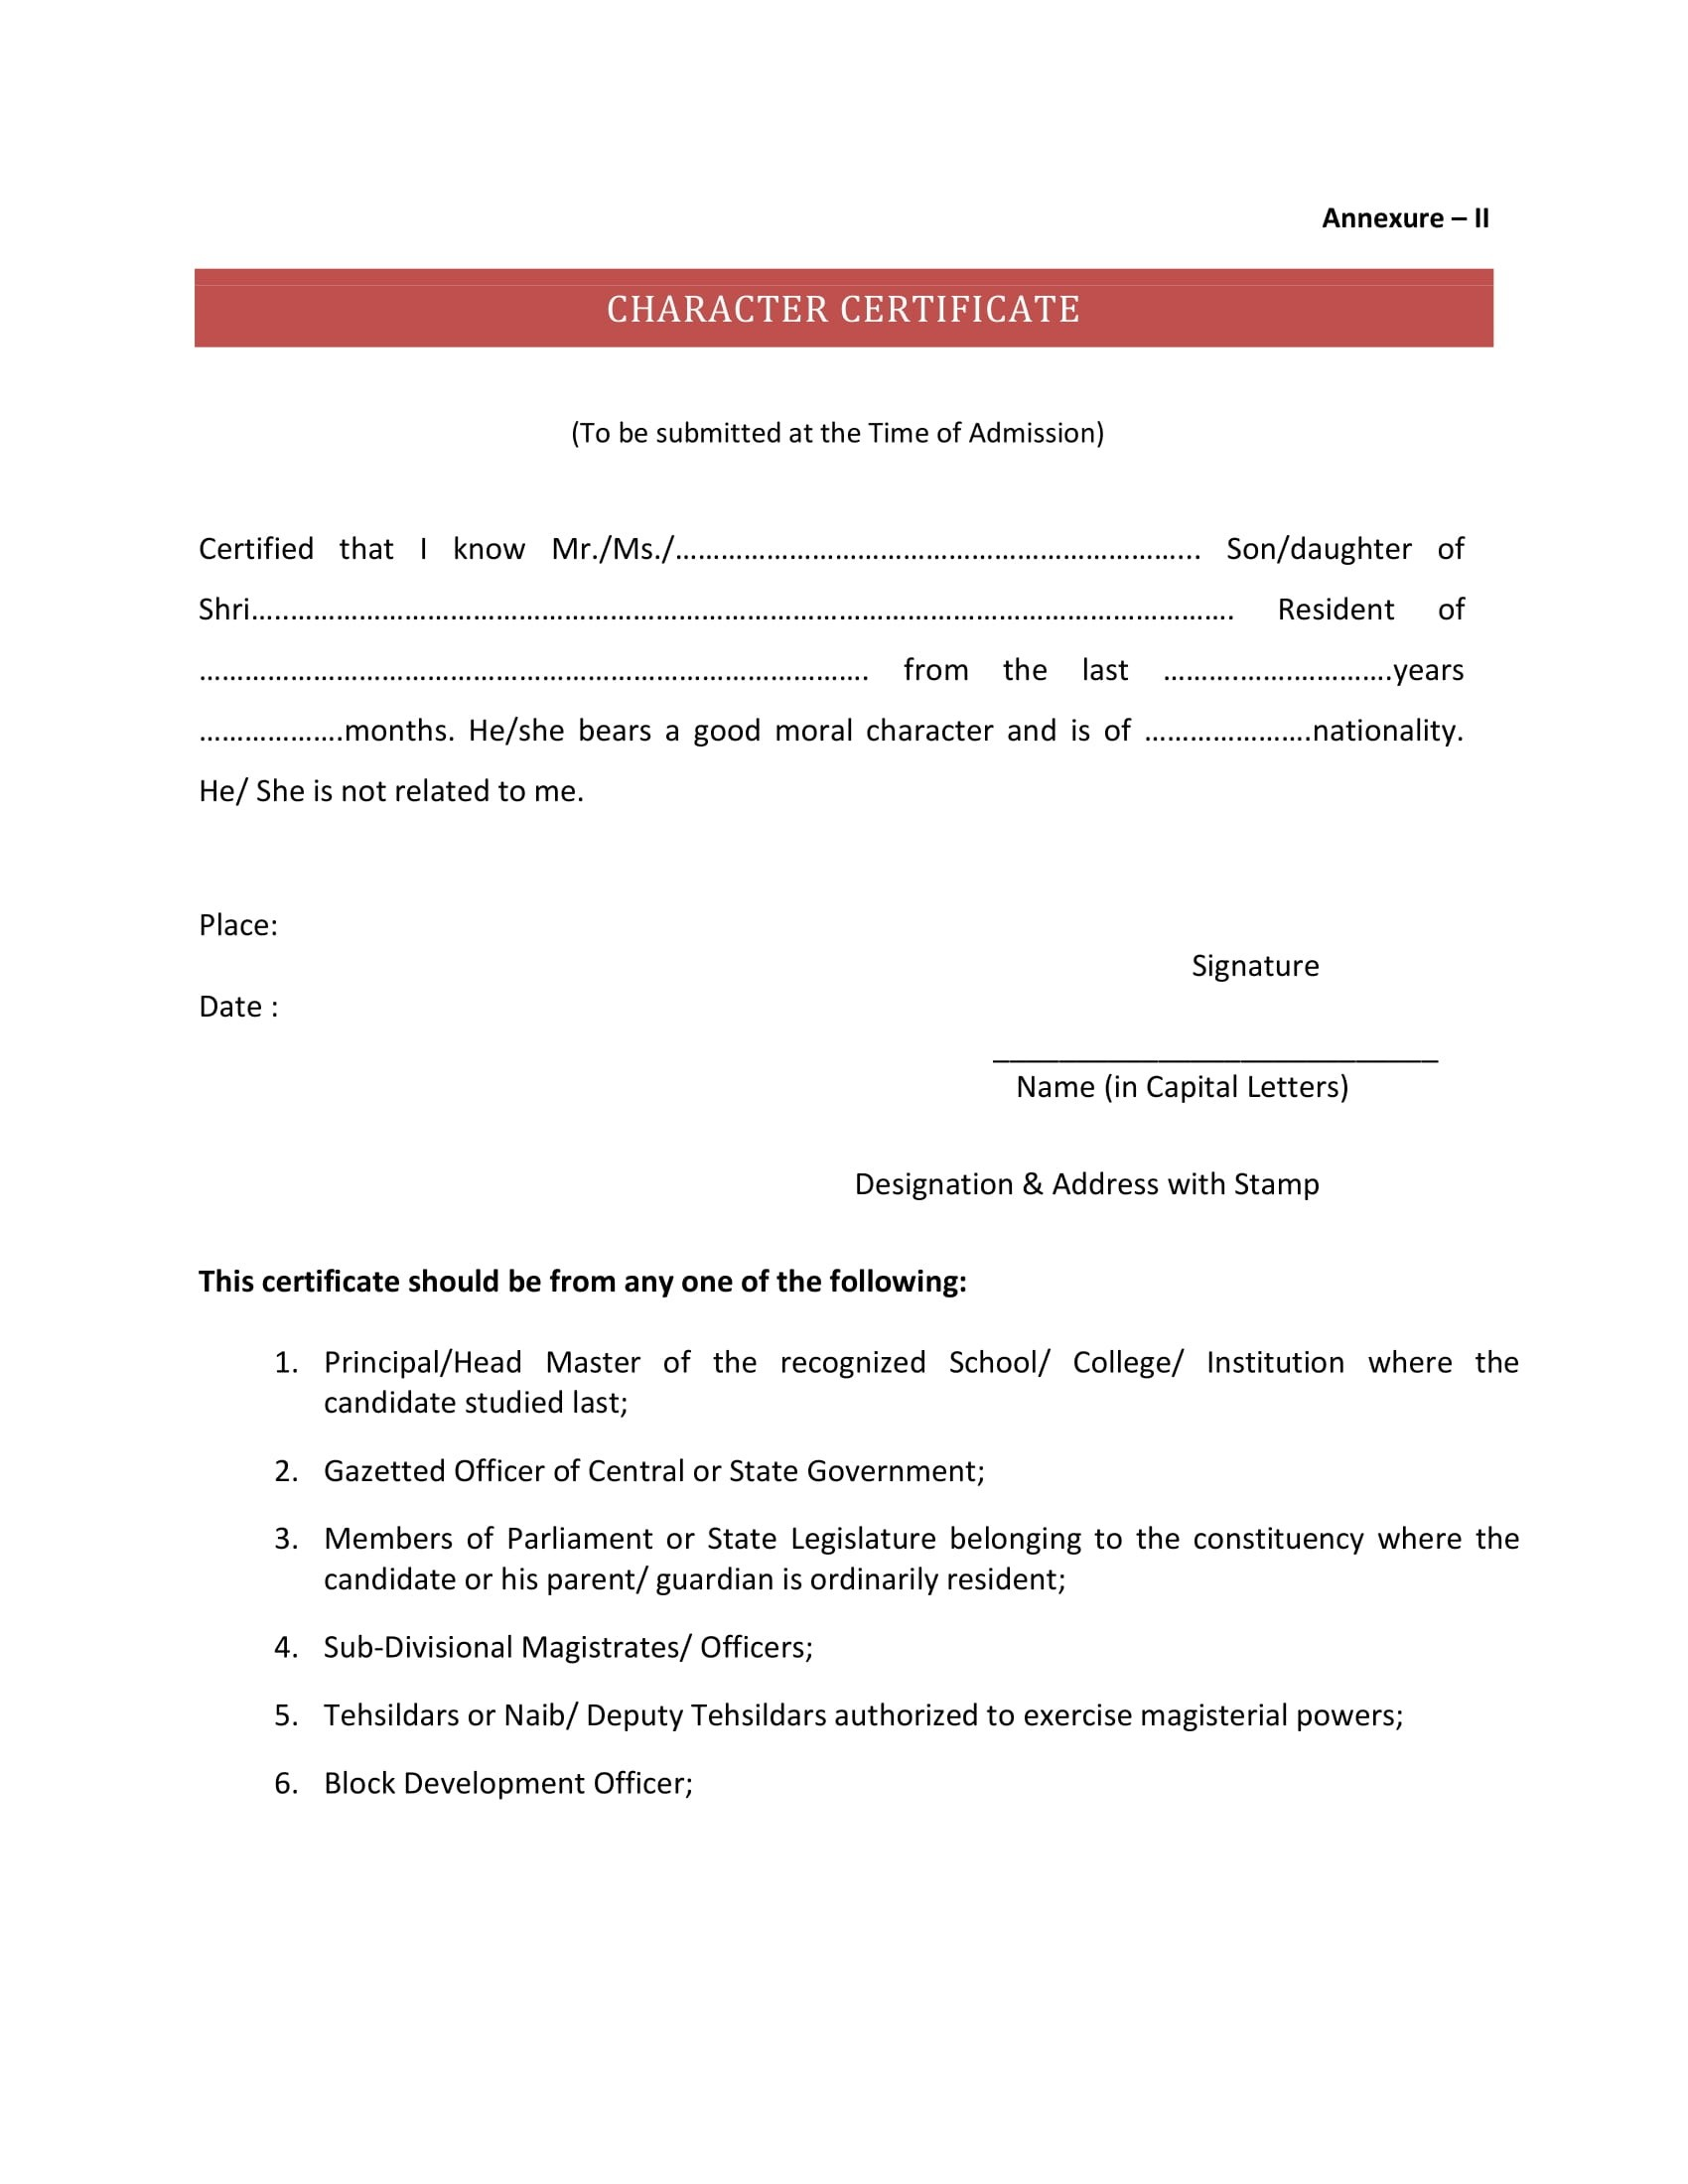 Gap Certificate format In Hindi Pdf Best Of What is the format Of